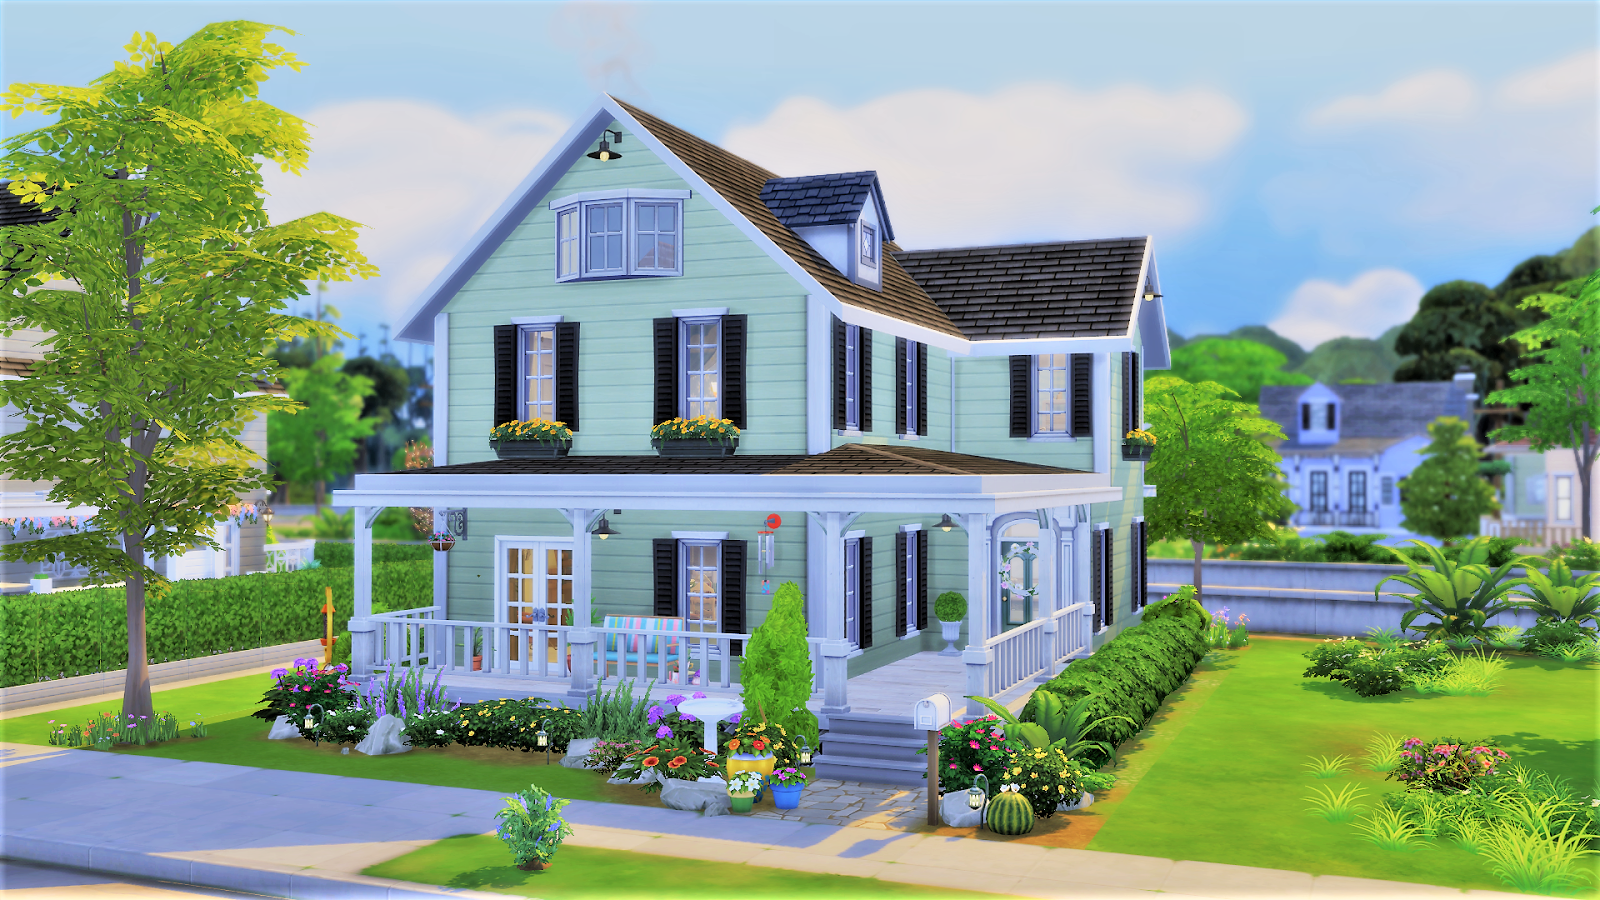 Sim House Design Workshop Sims 4 Maple House 恬静乡村生活